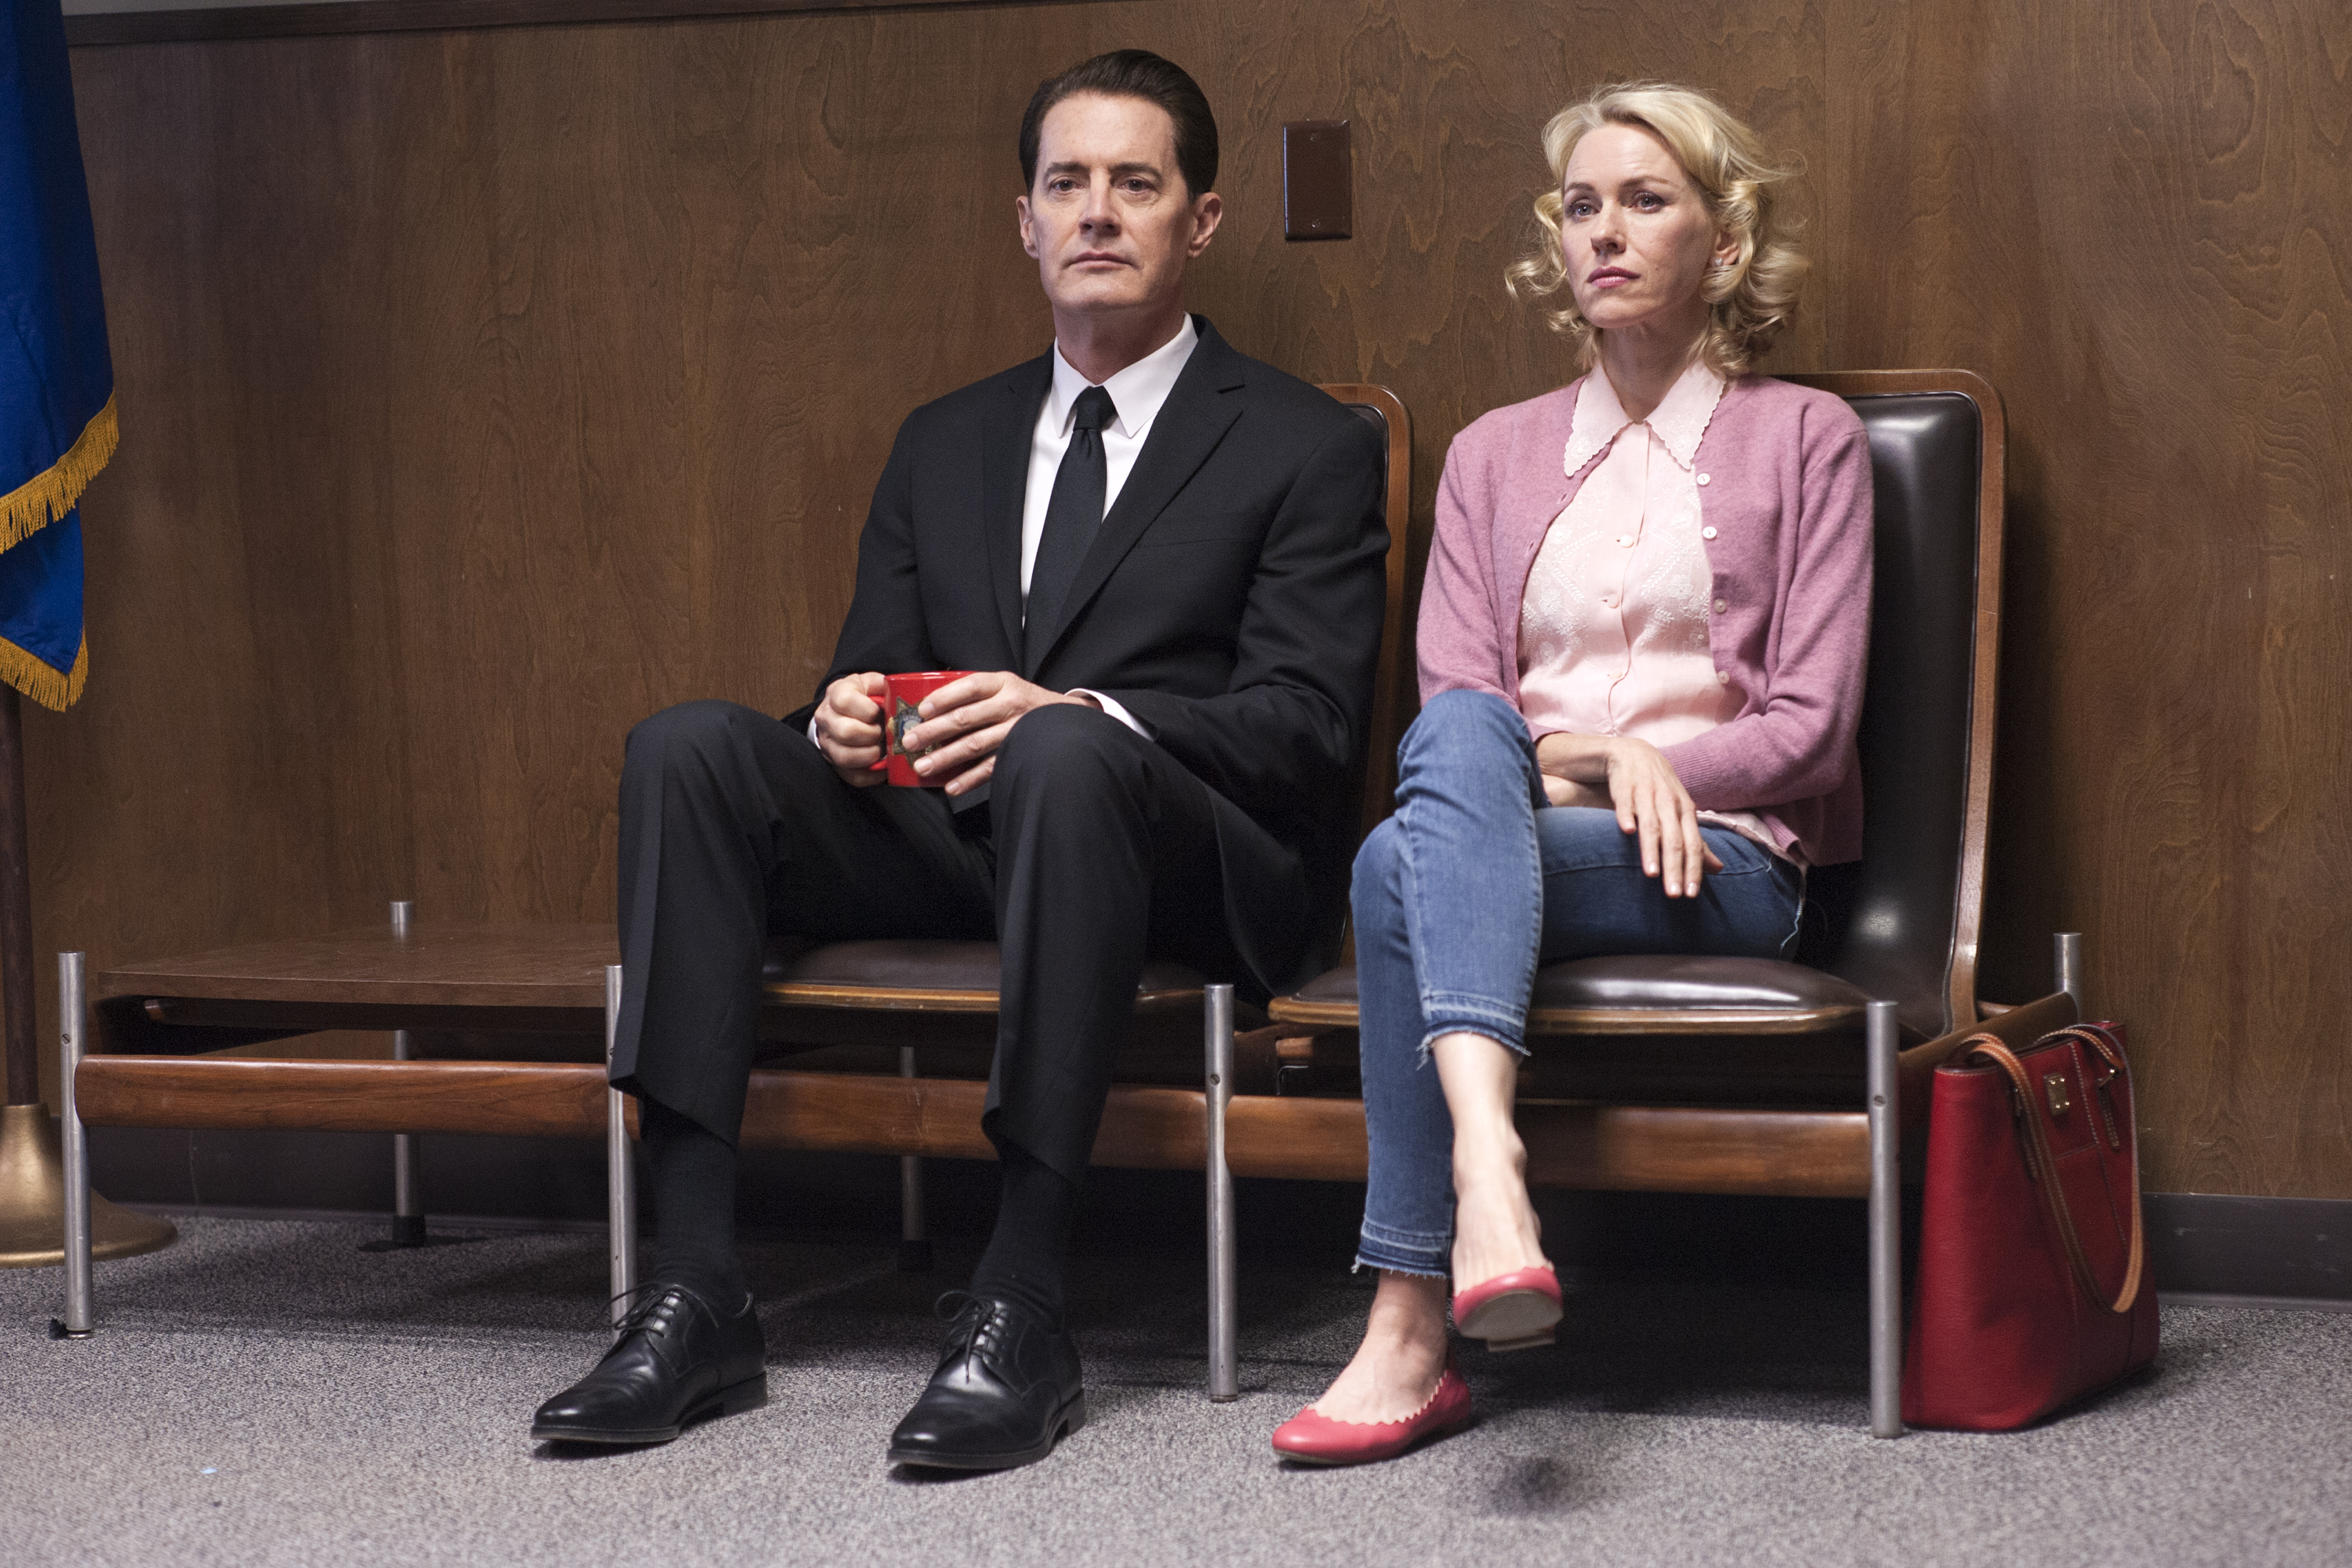 rr 14200 r Recapping Twin Peaks: The Return: Part 9